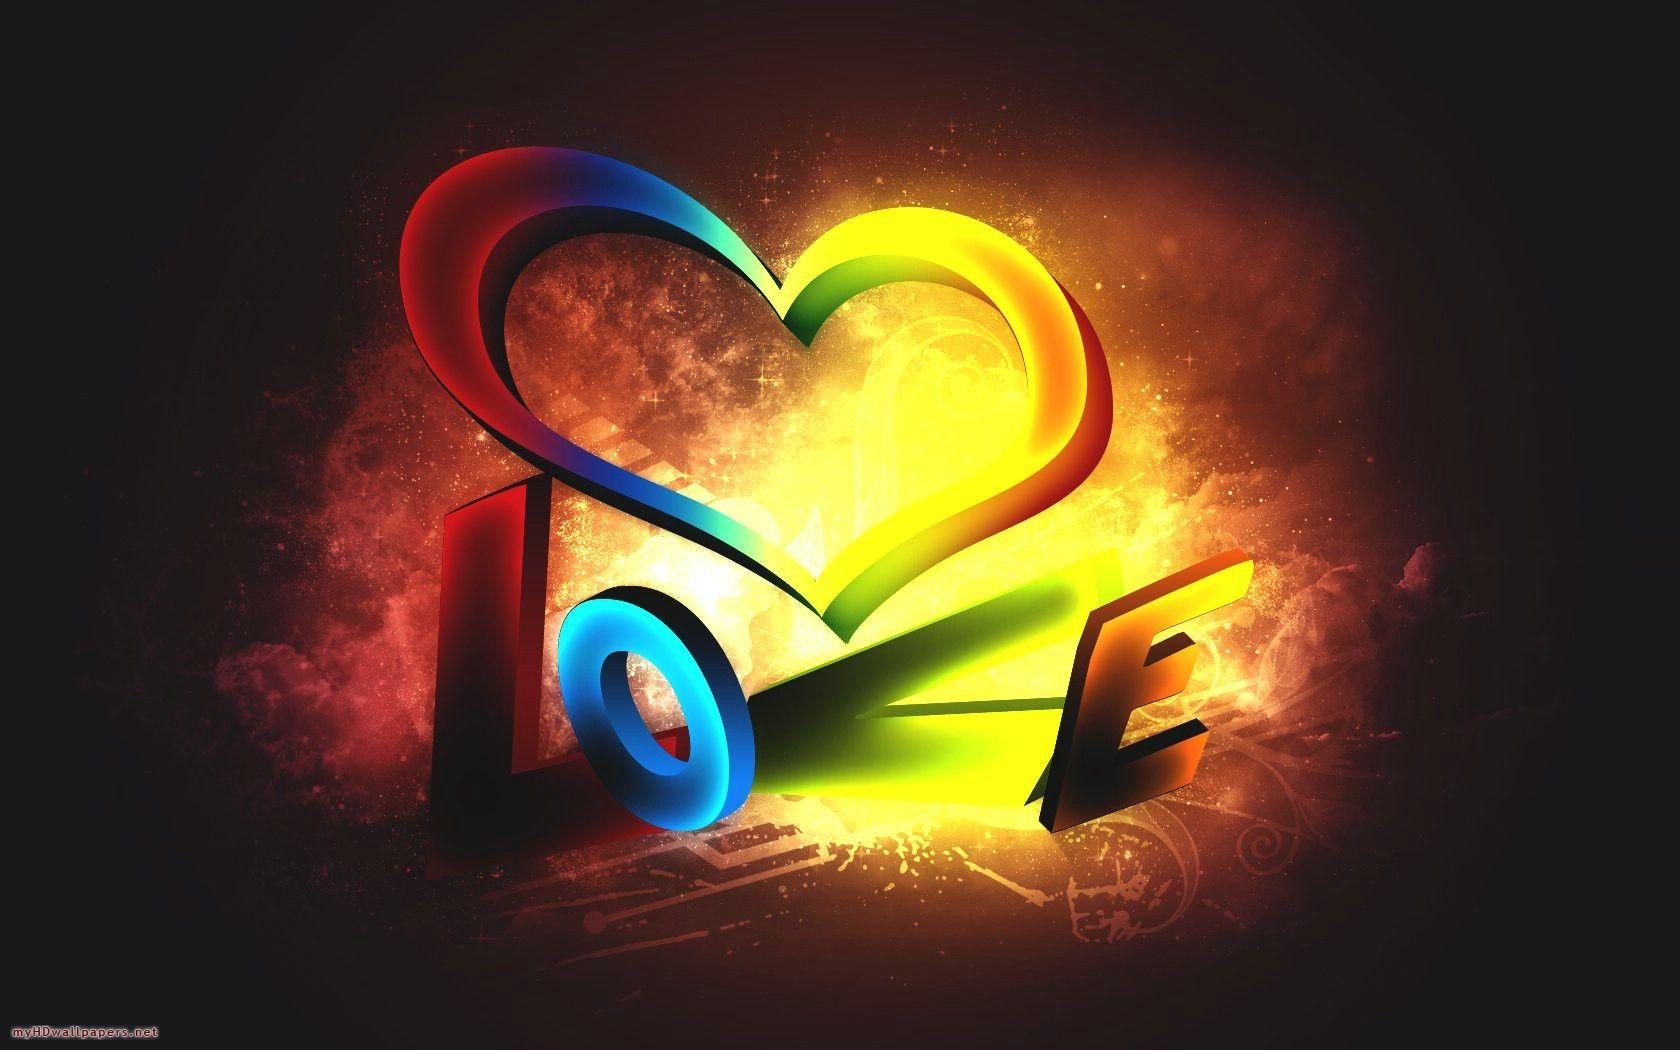 Love Hd 3d Wallpaper - Cool Wallpapers